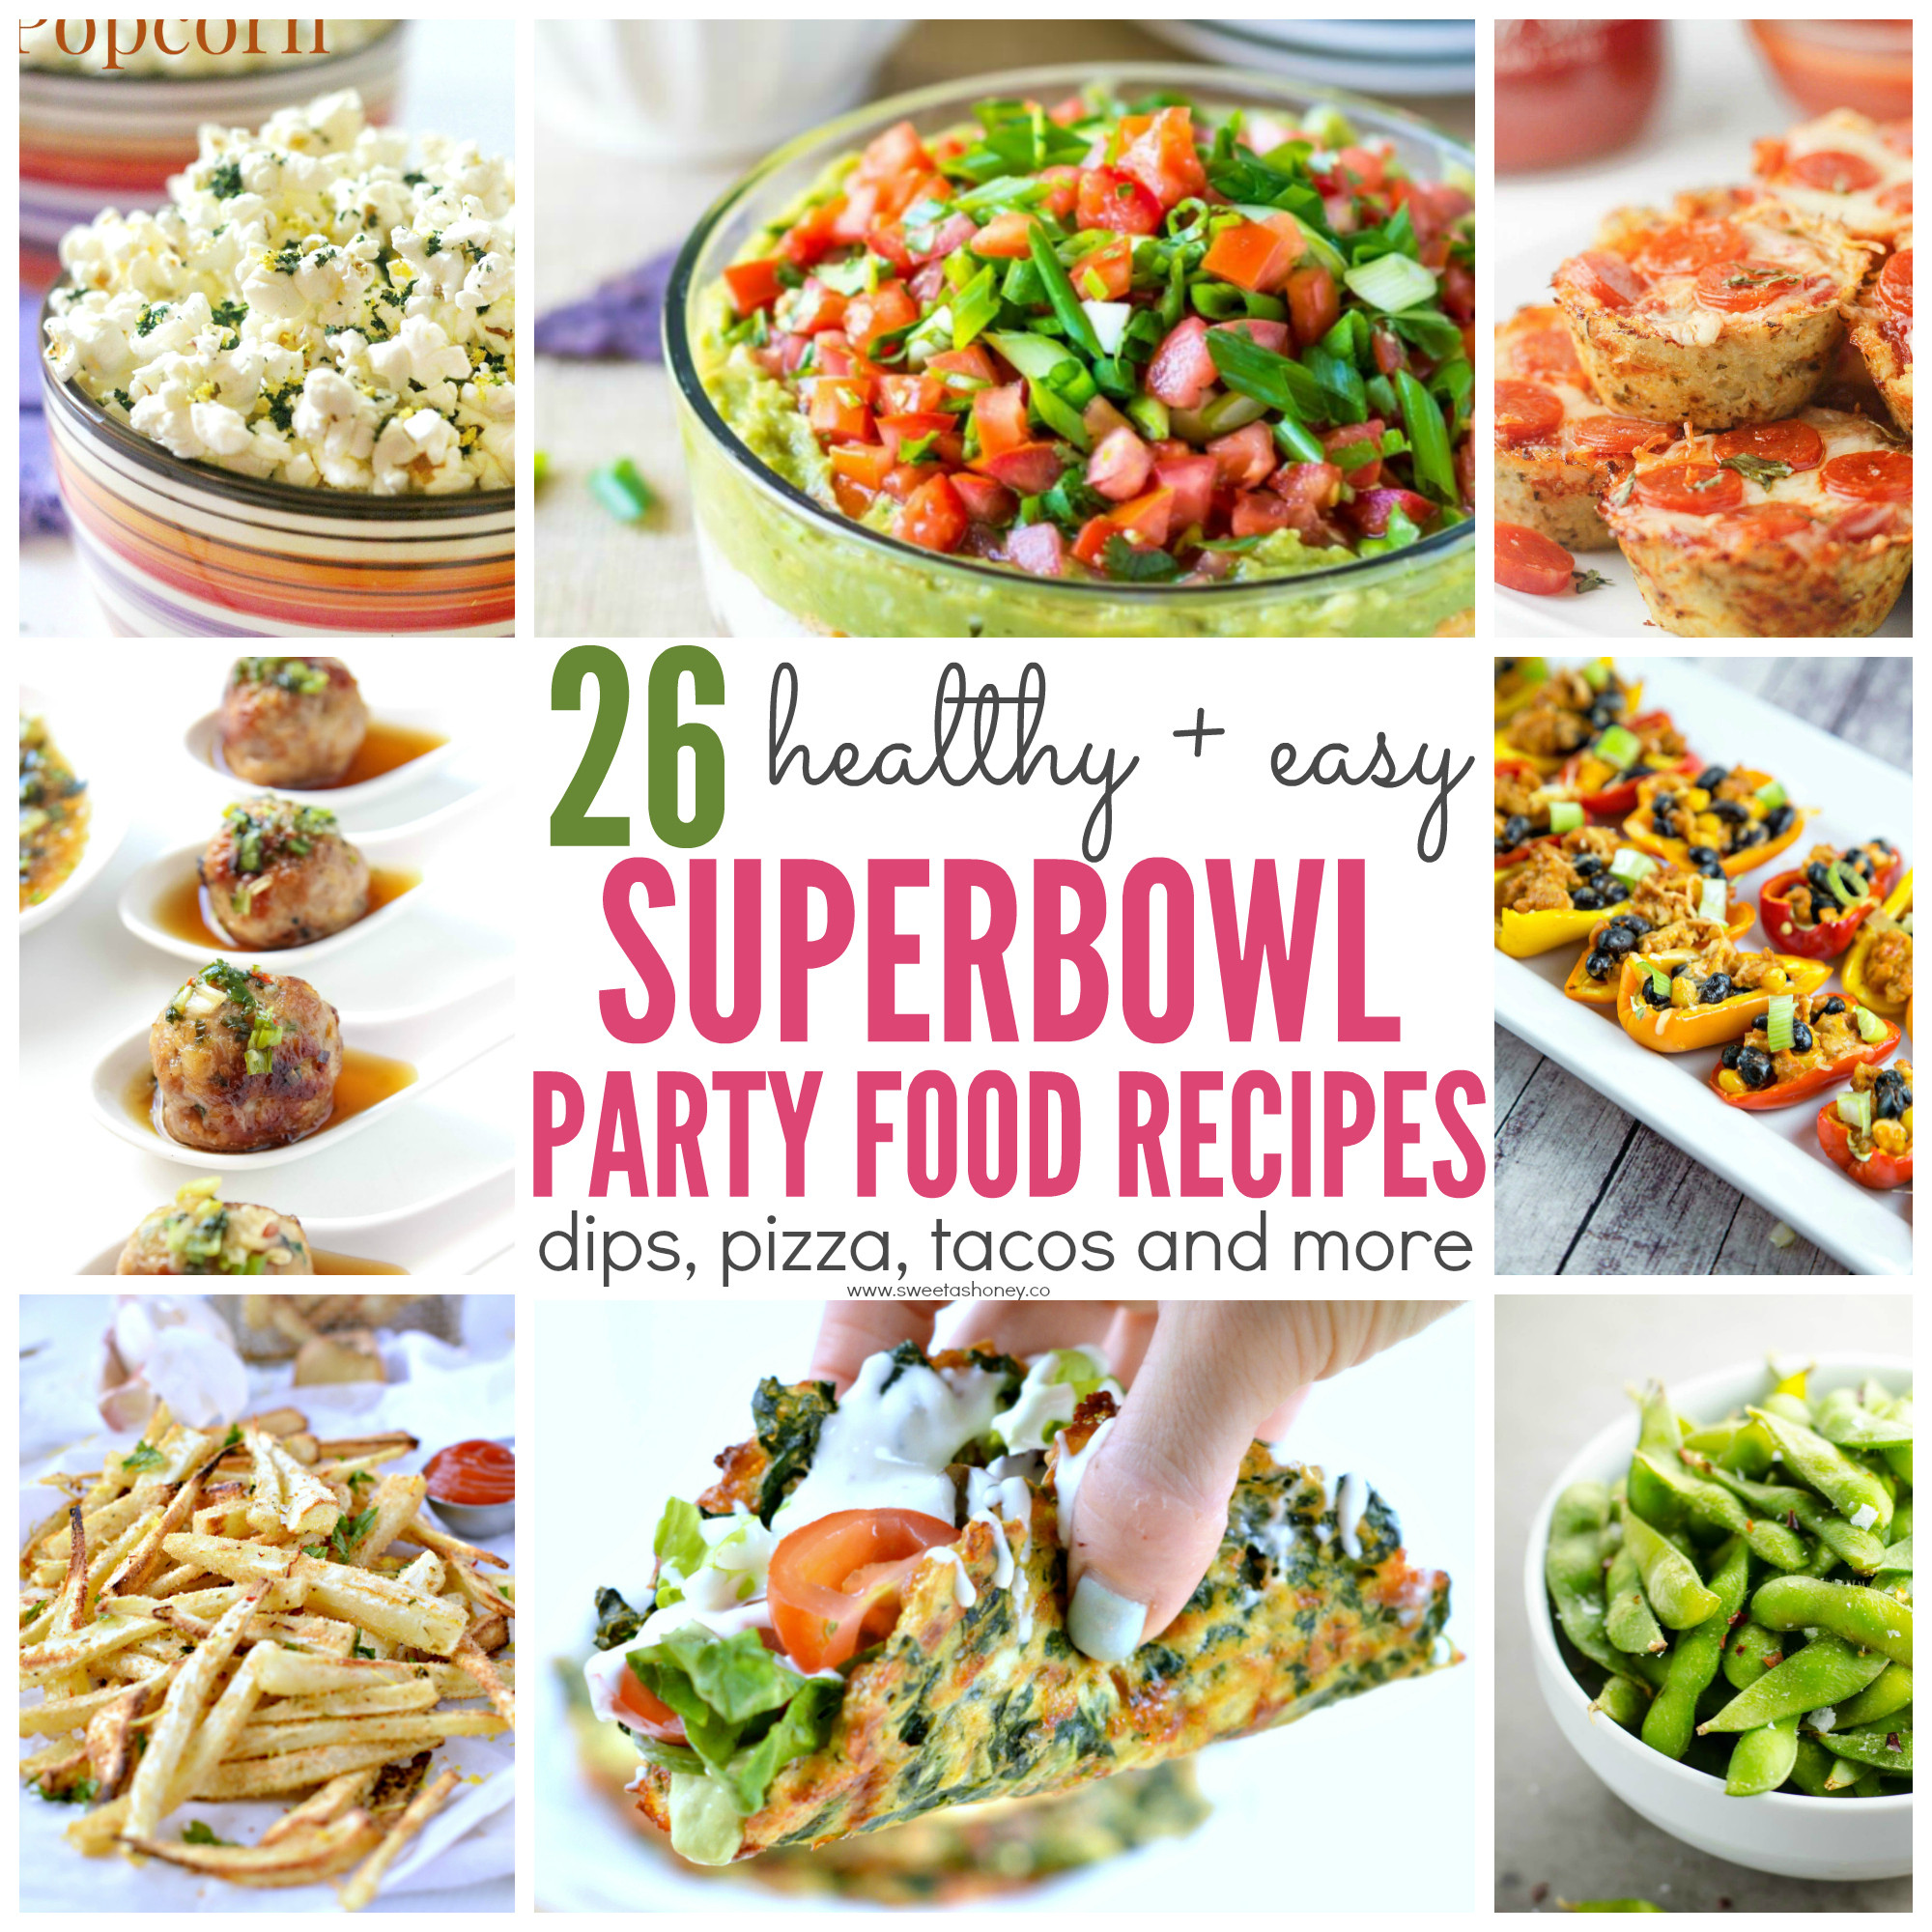 Healthy Snacks For Superbowl Party  26 Healthy Superbowl Party Food Recipes Sweet and Savory